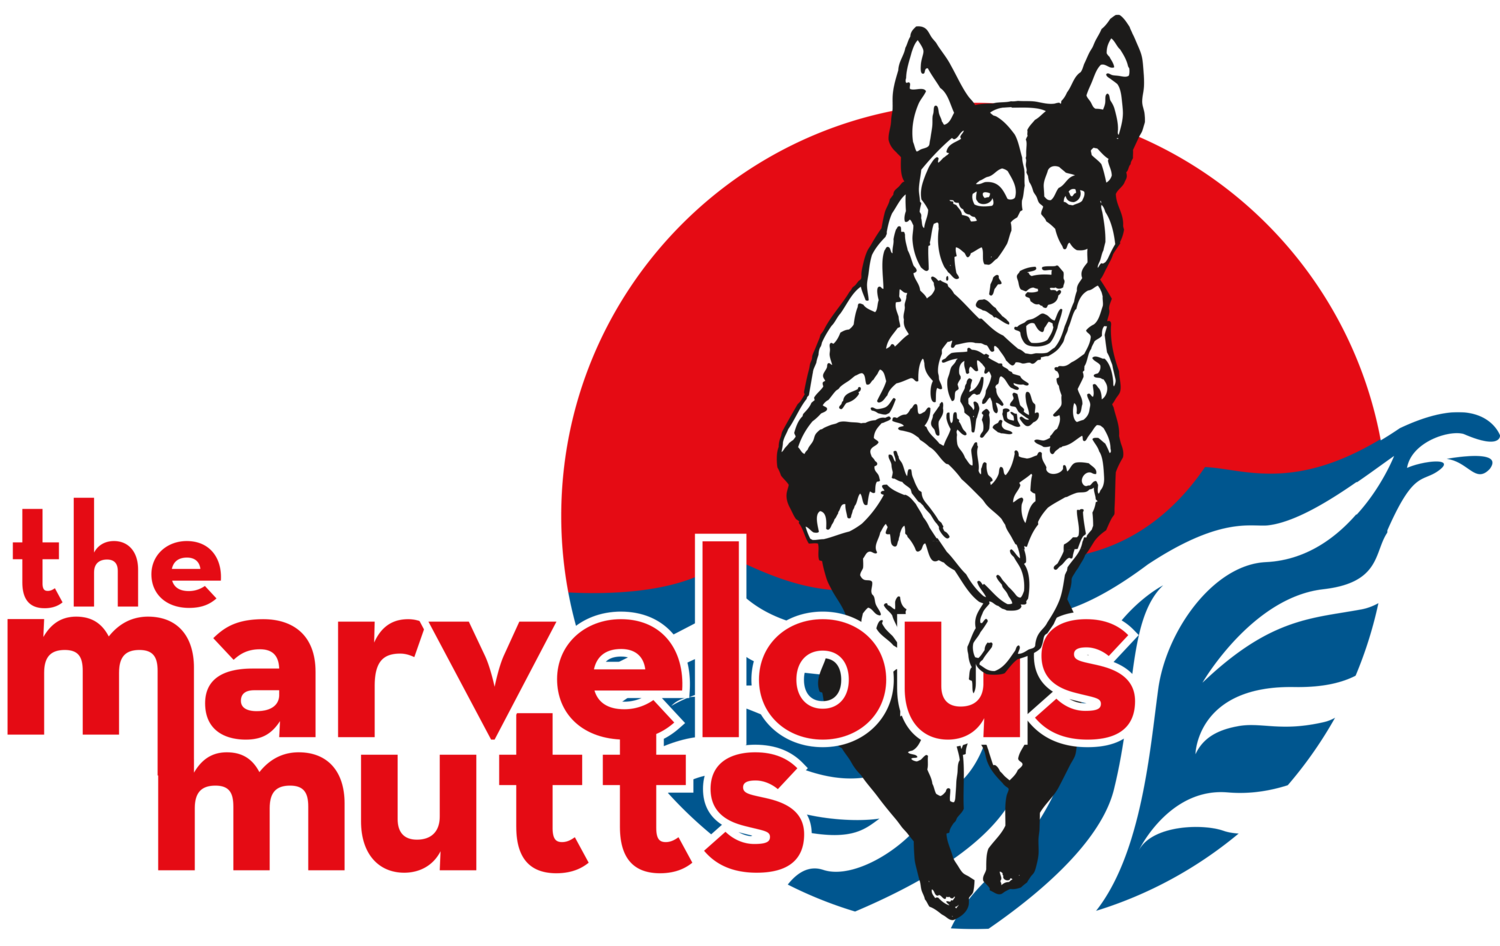 The Marvelous Mutts